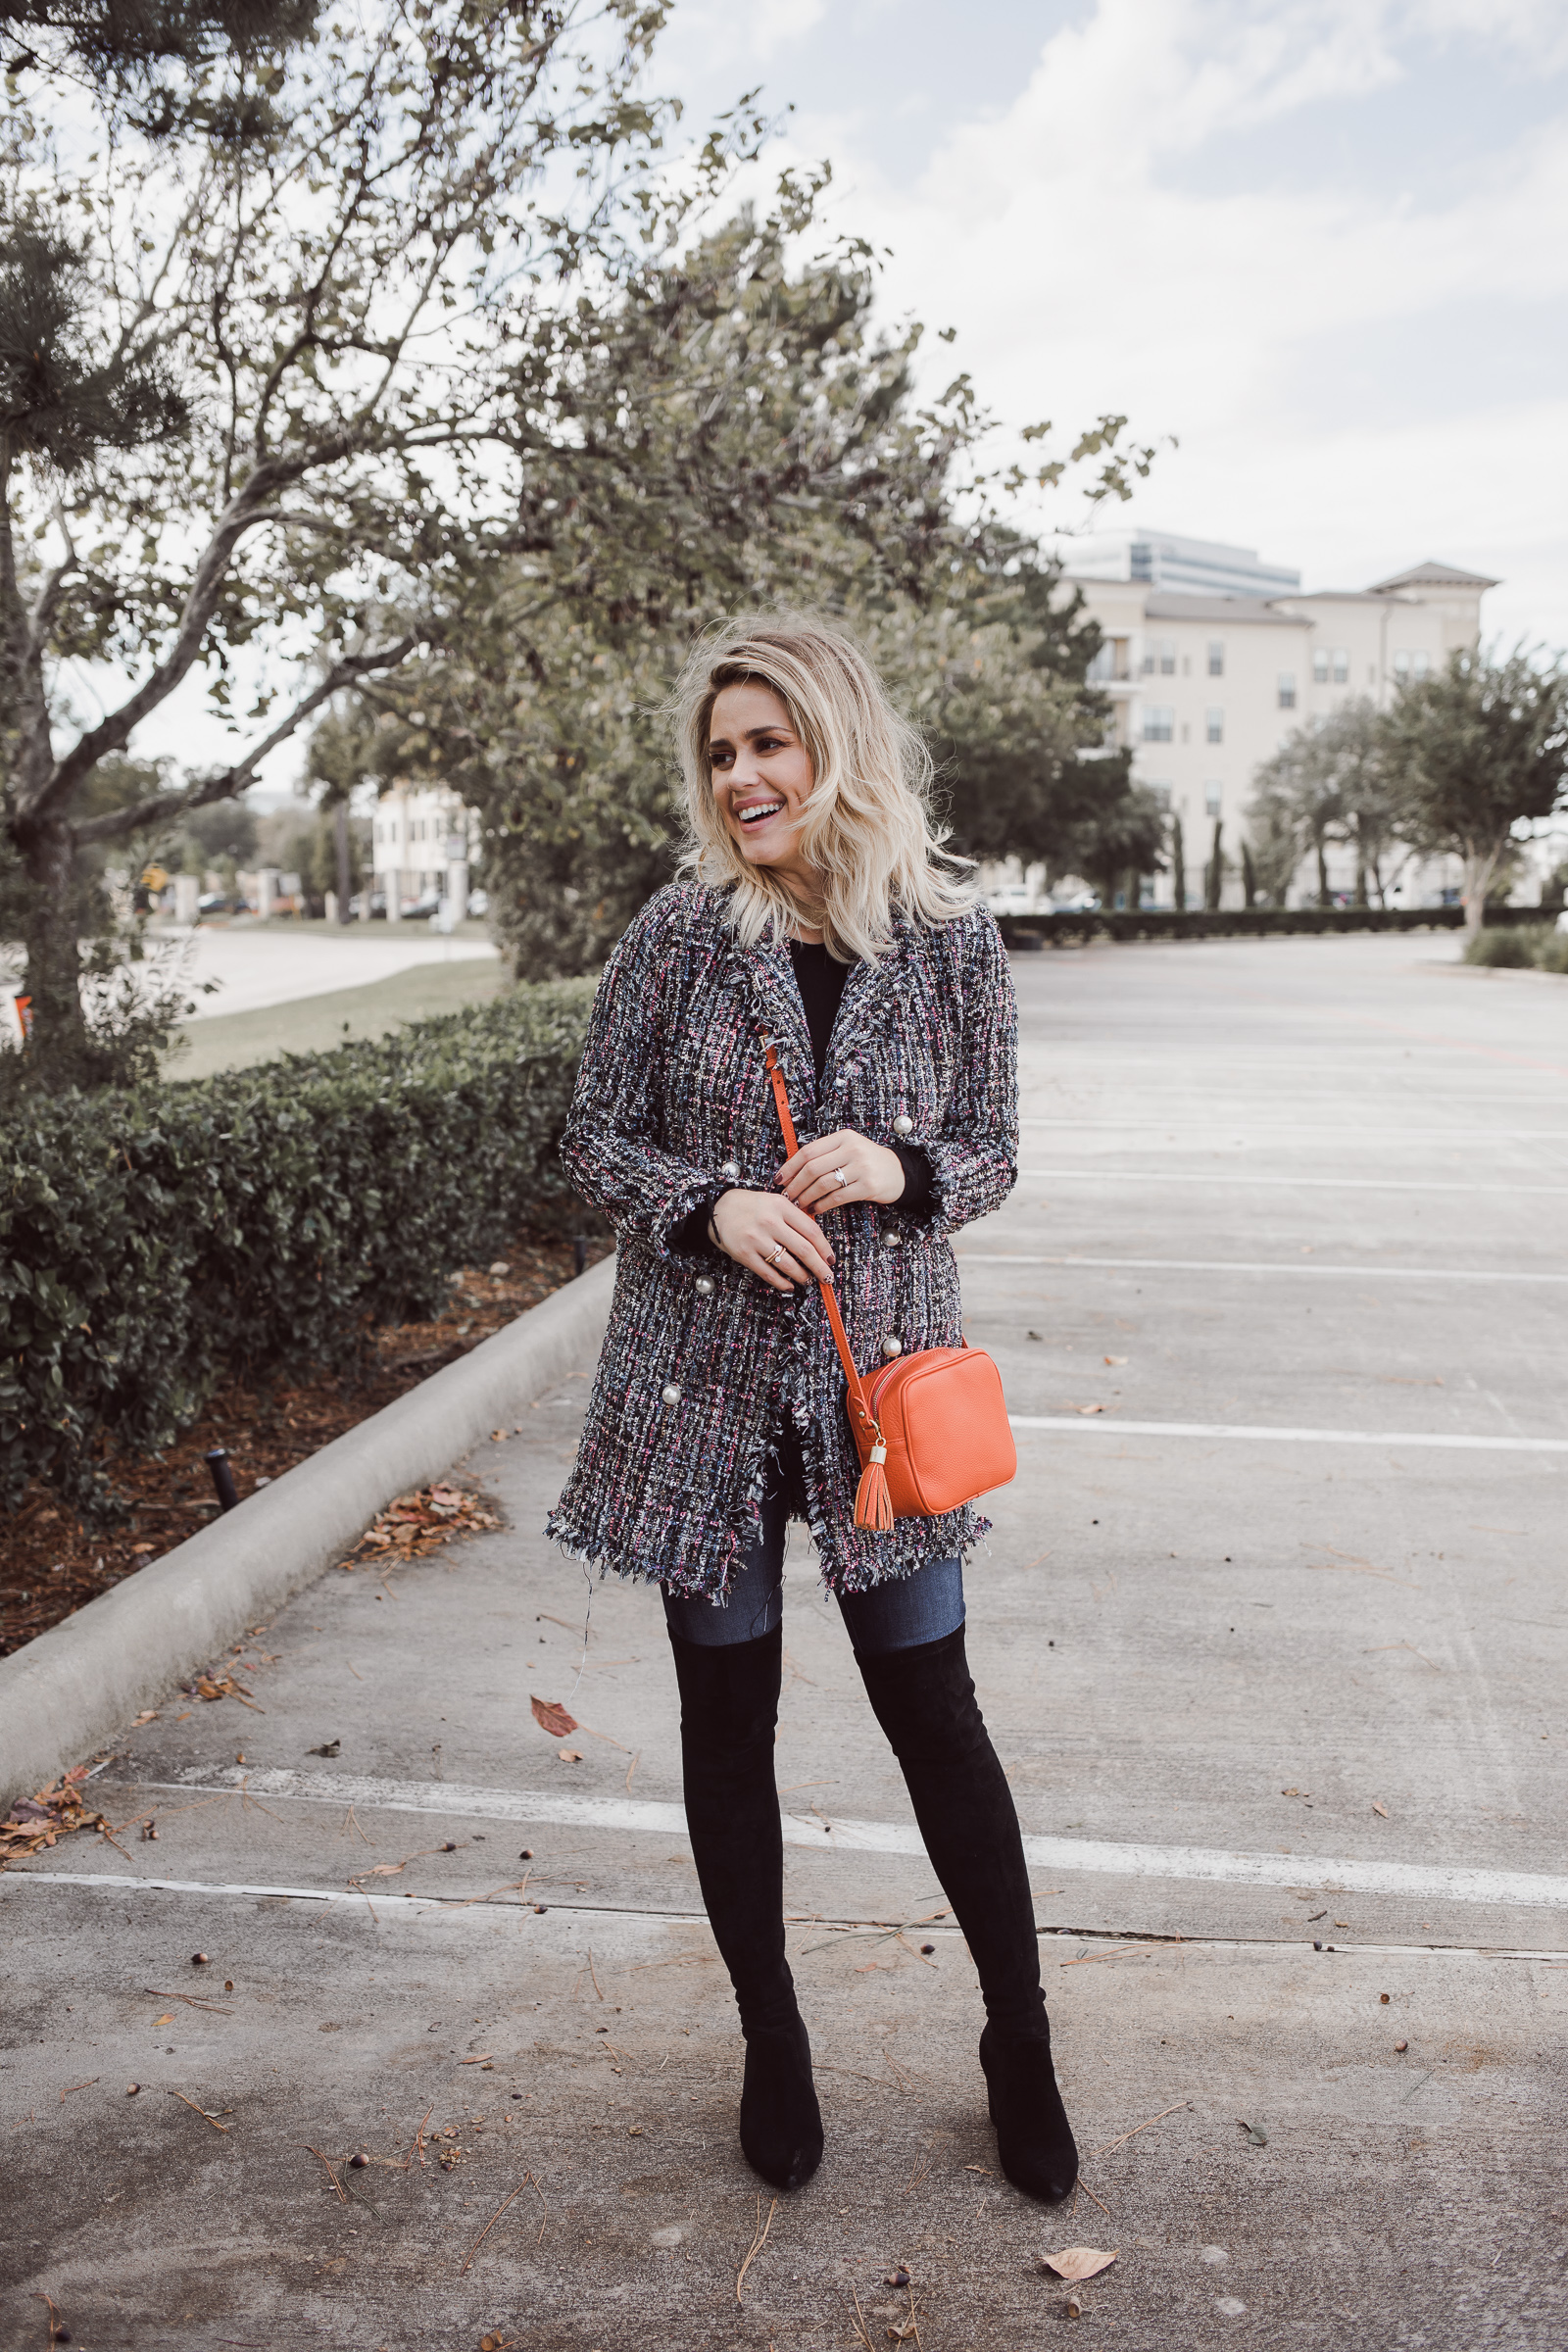 Houston fashion blogger Uptown with Elly Brown wears over the knee boots with a tweed jacket